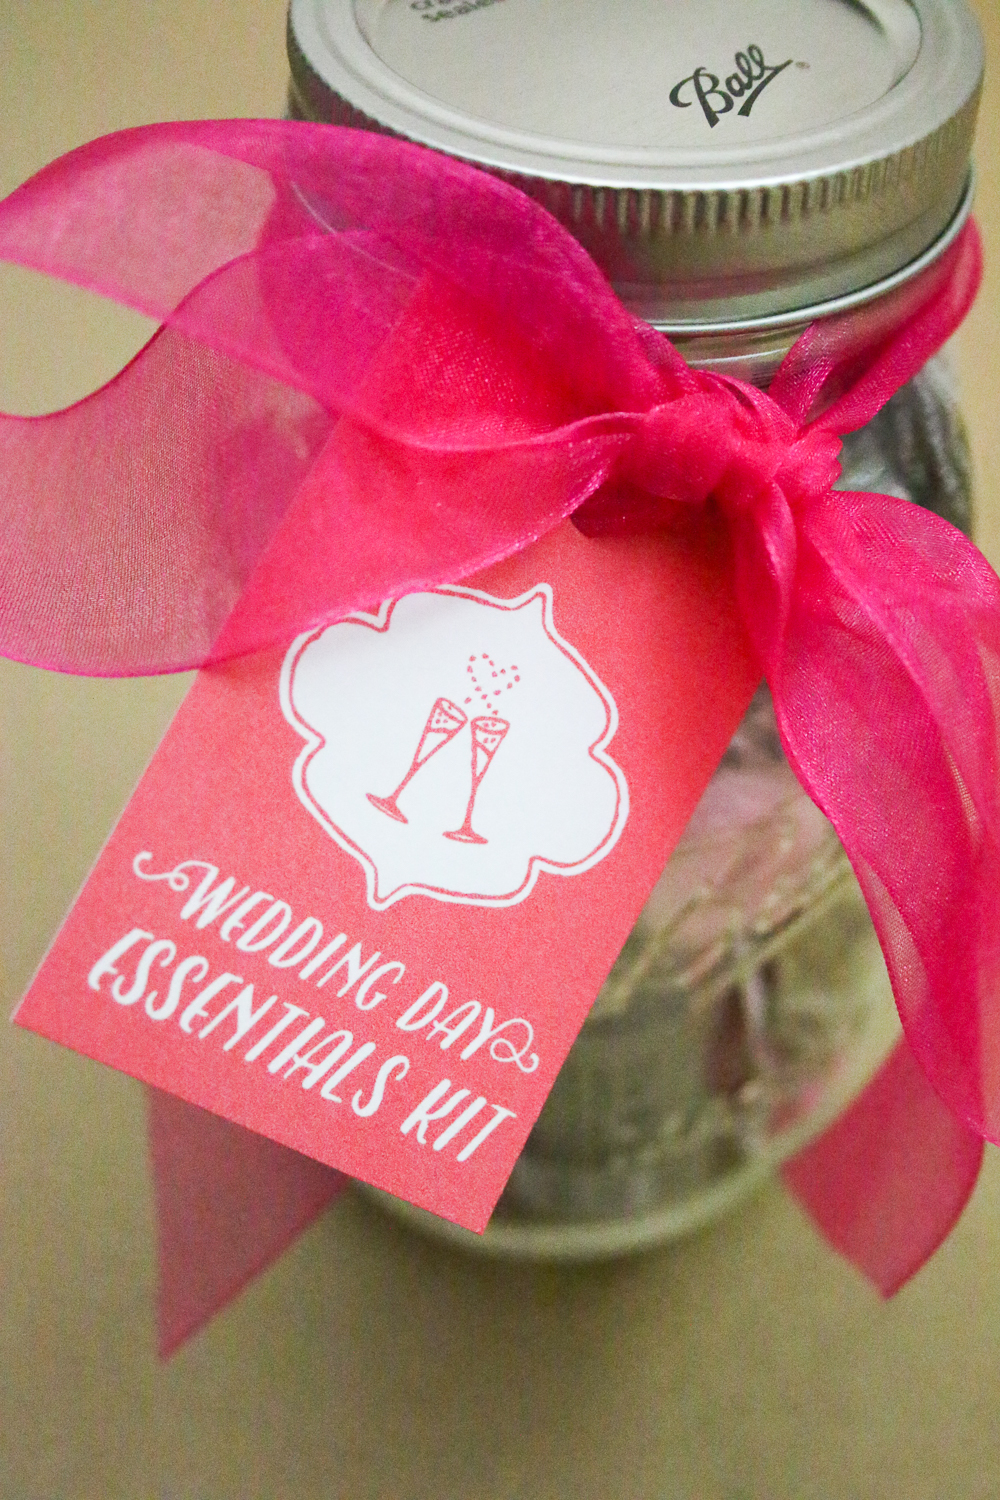 Mason Jar Gift Ideas - Wedding Emergency Kit